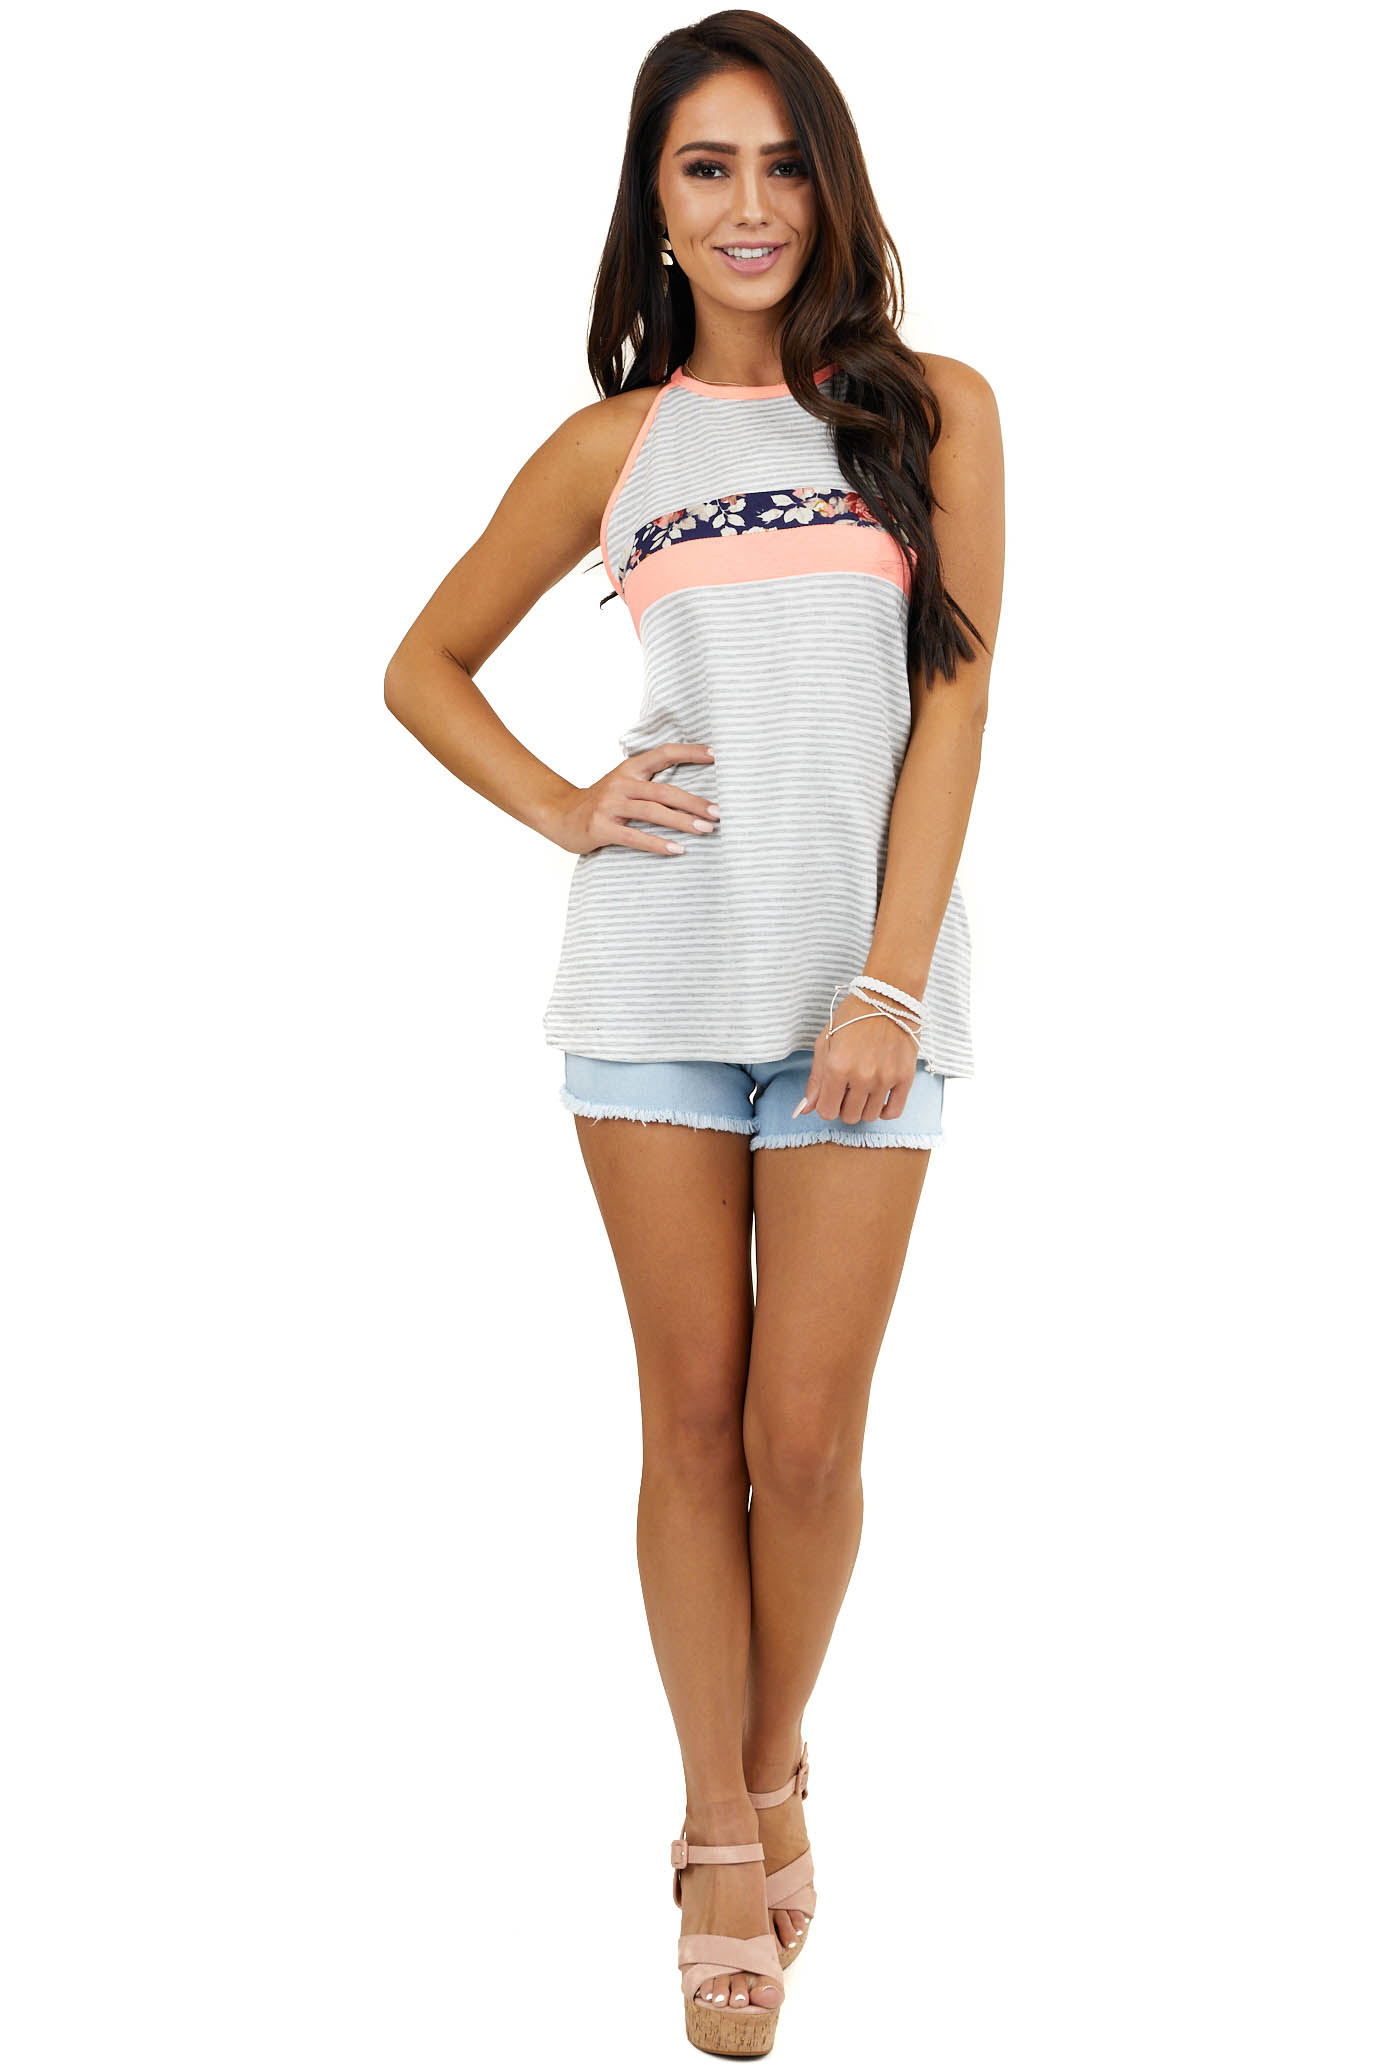 Heather Grey and White Striped Floral Color Block Tank Top